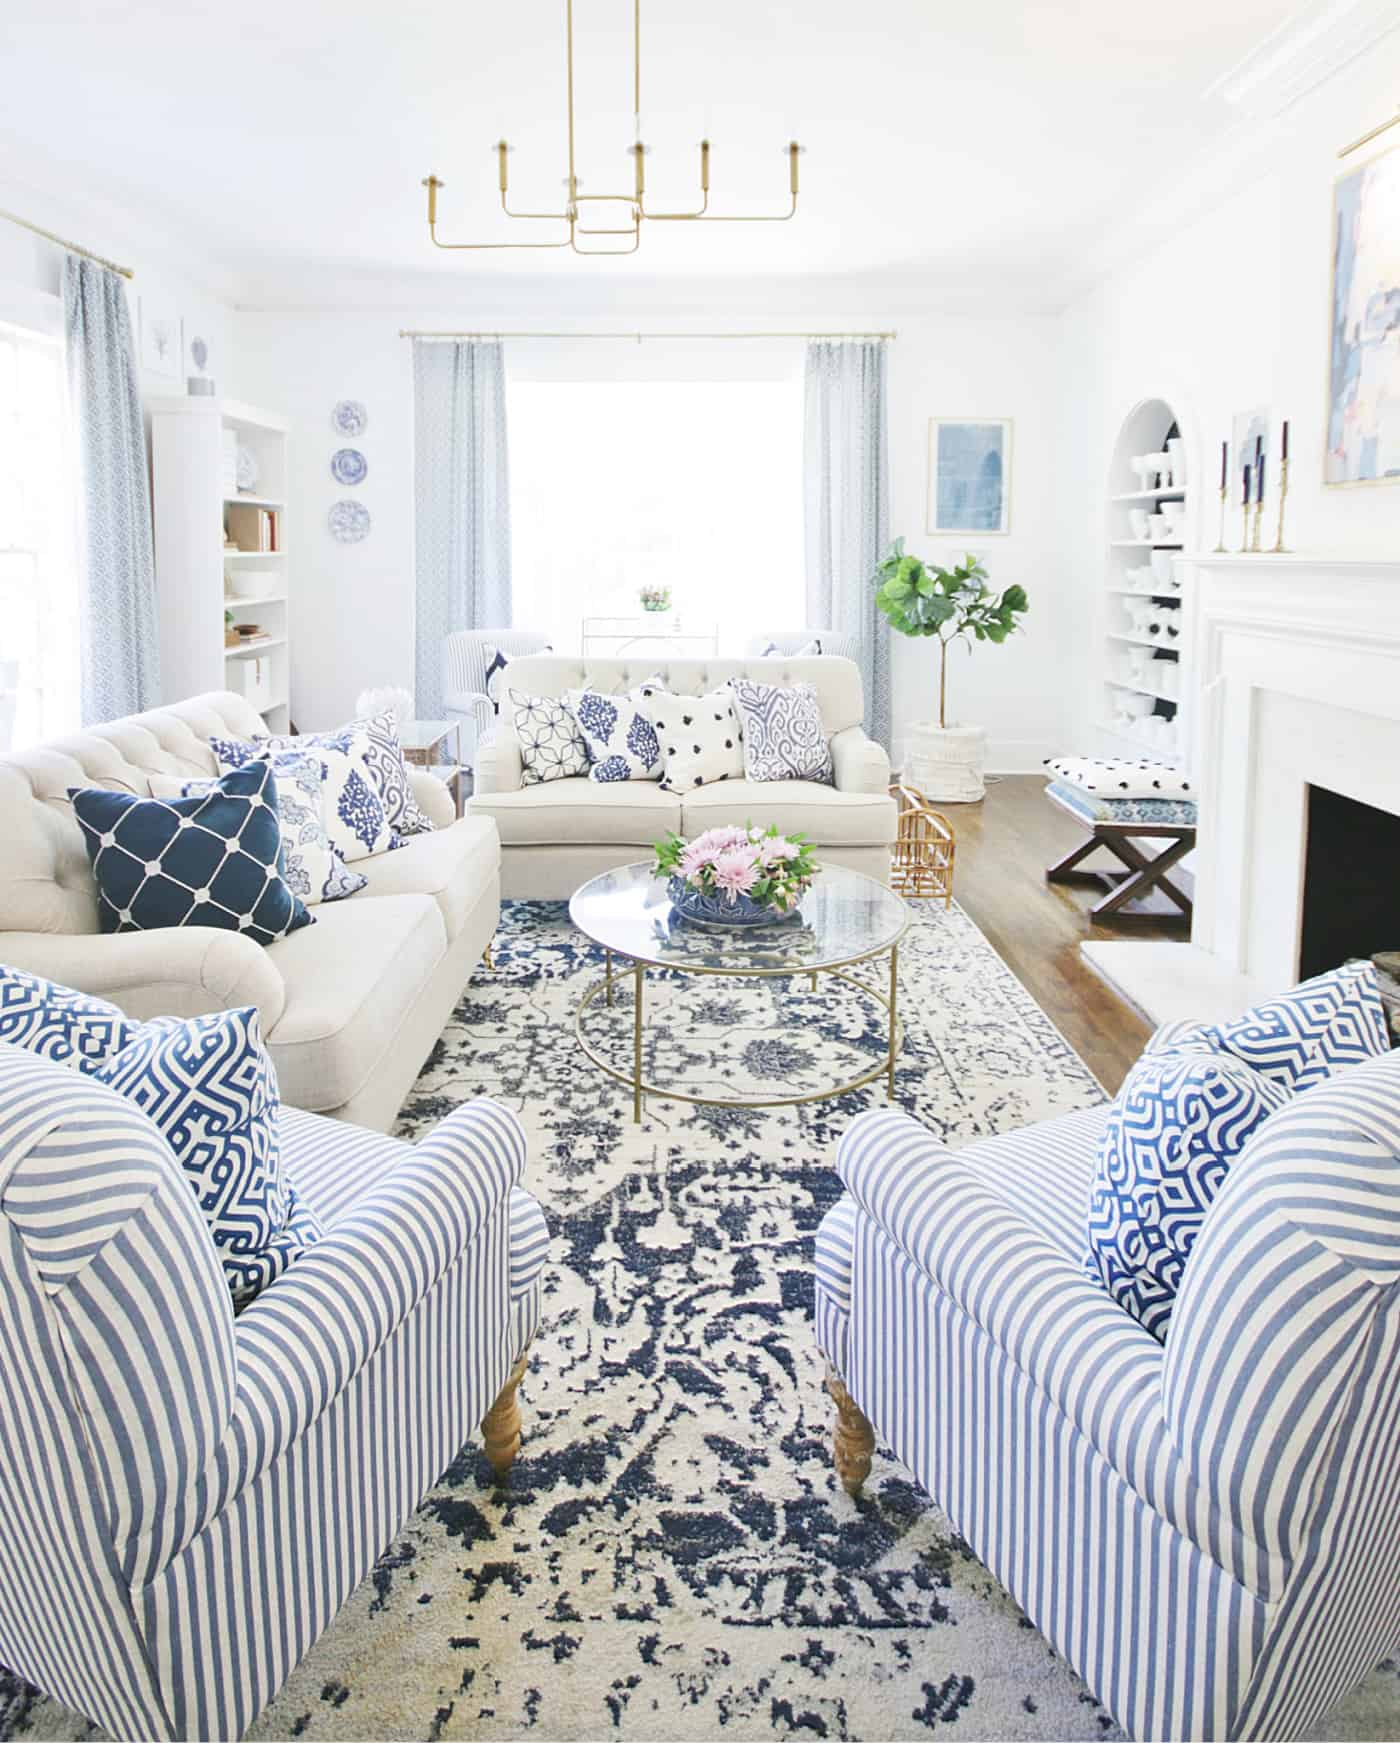 How To Mix Patterns With Blue And White - Thistlewood Farm